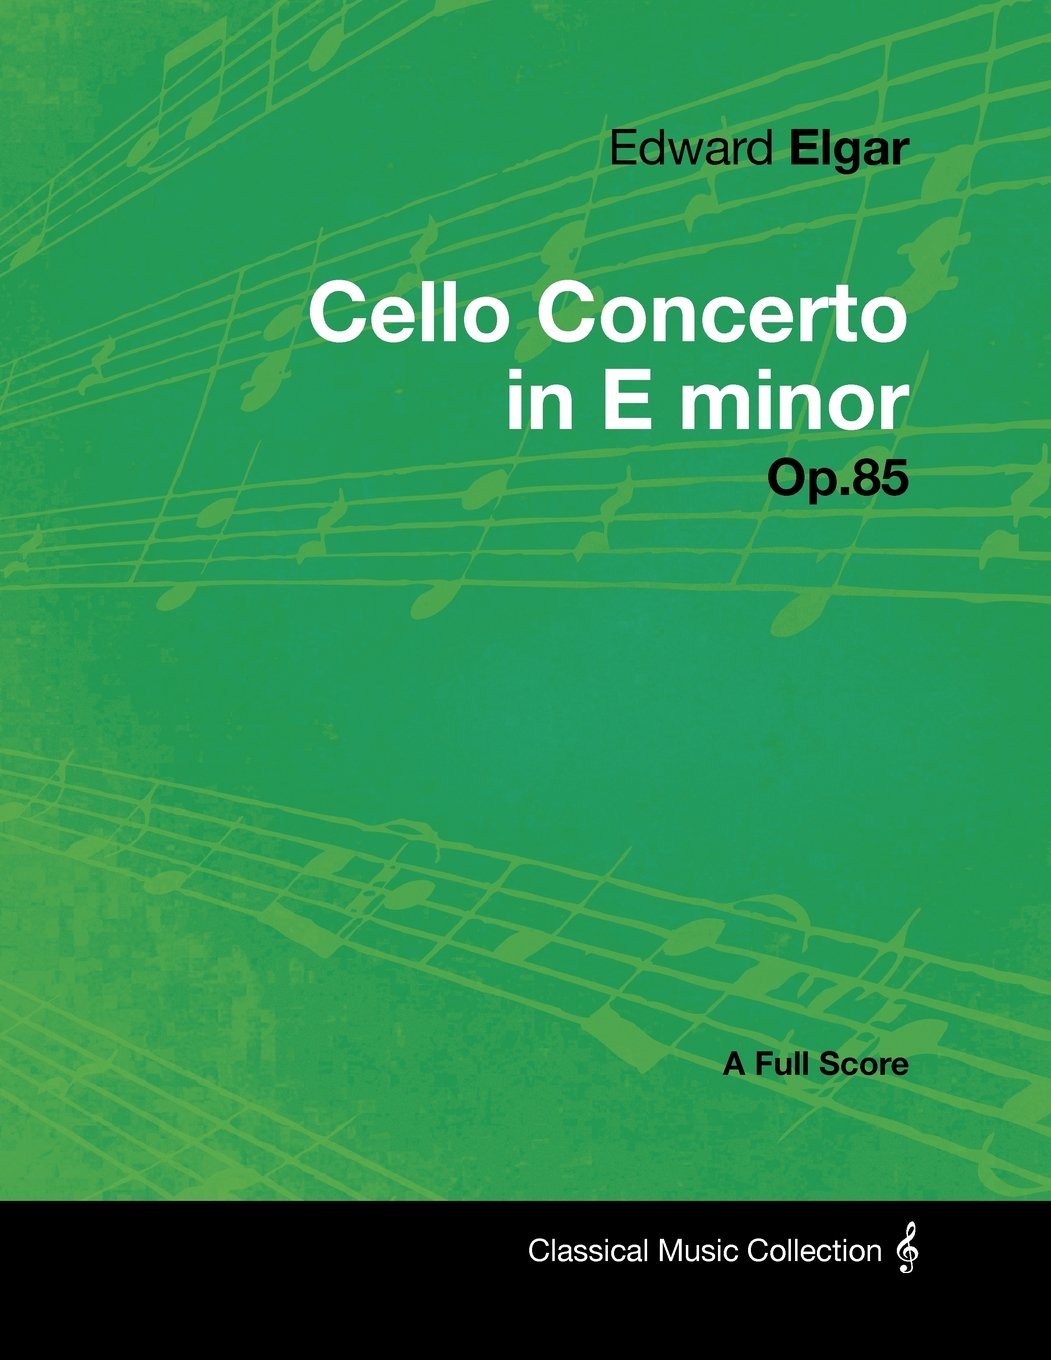 Edward Elgar - Cello Concerto in E minor - Op.85 - A Full Score Paperback –  January 24, 2012